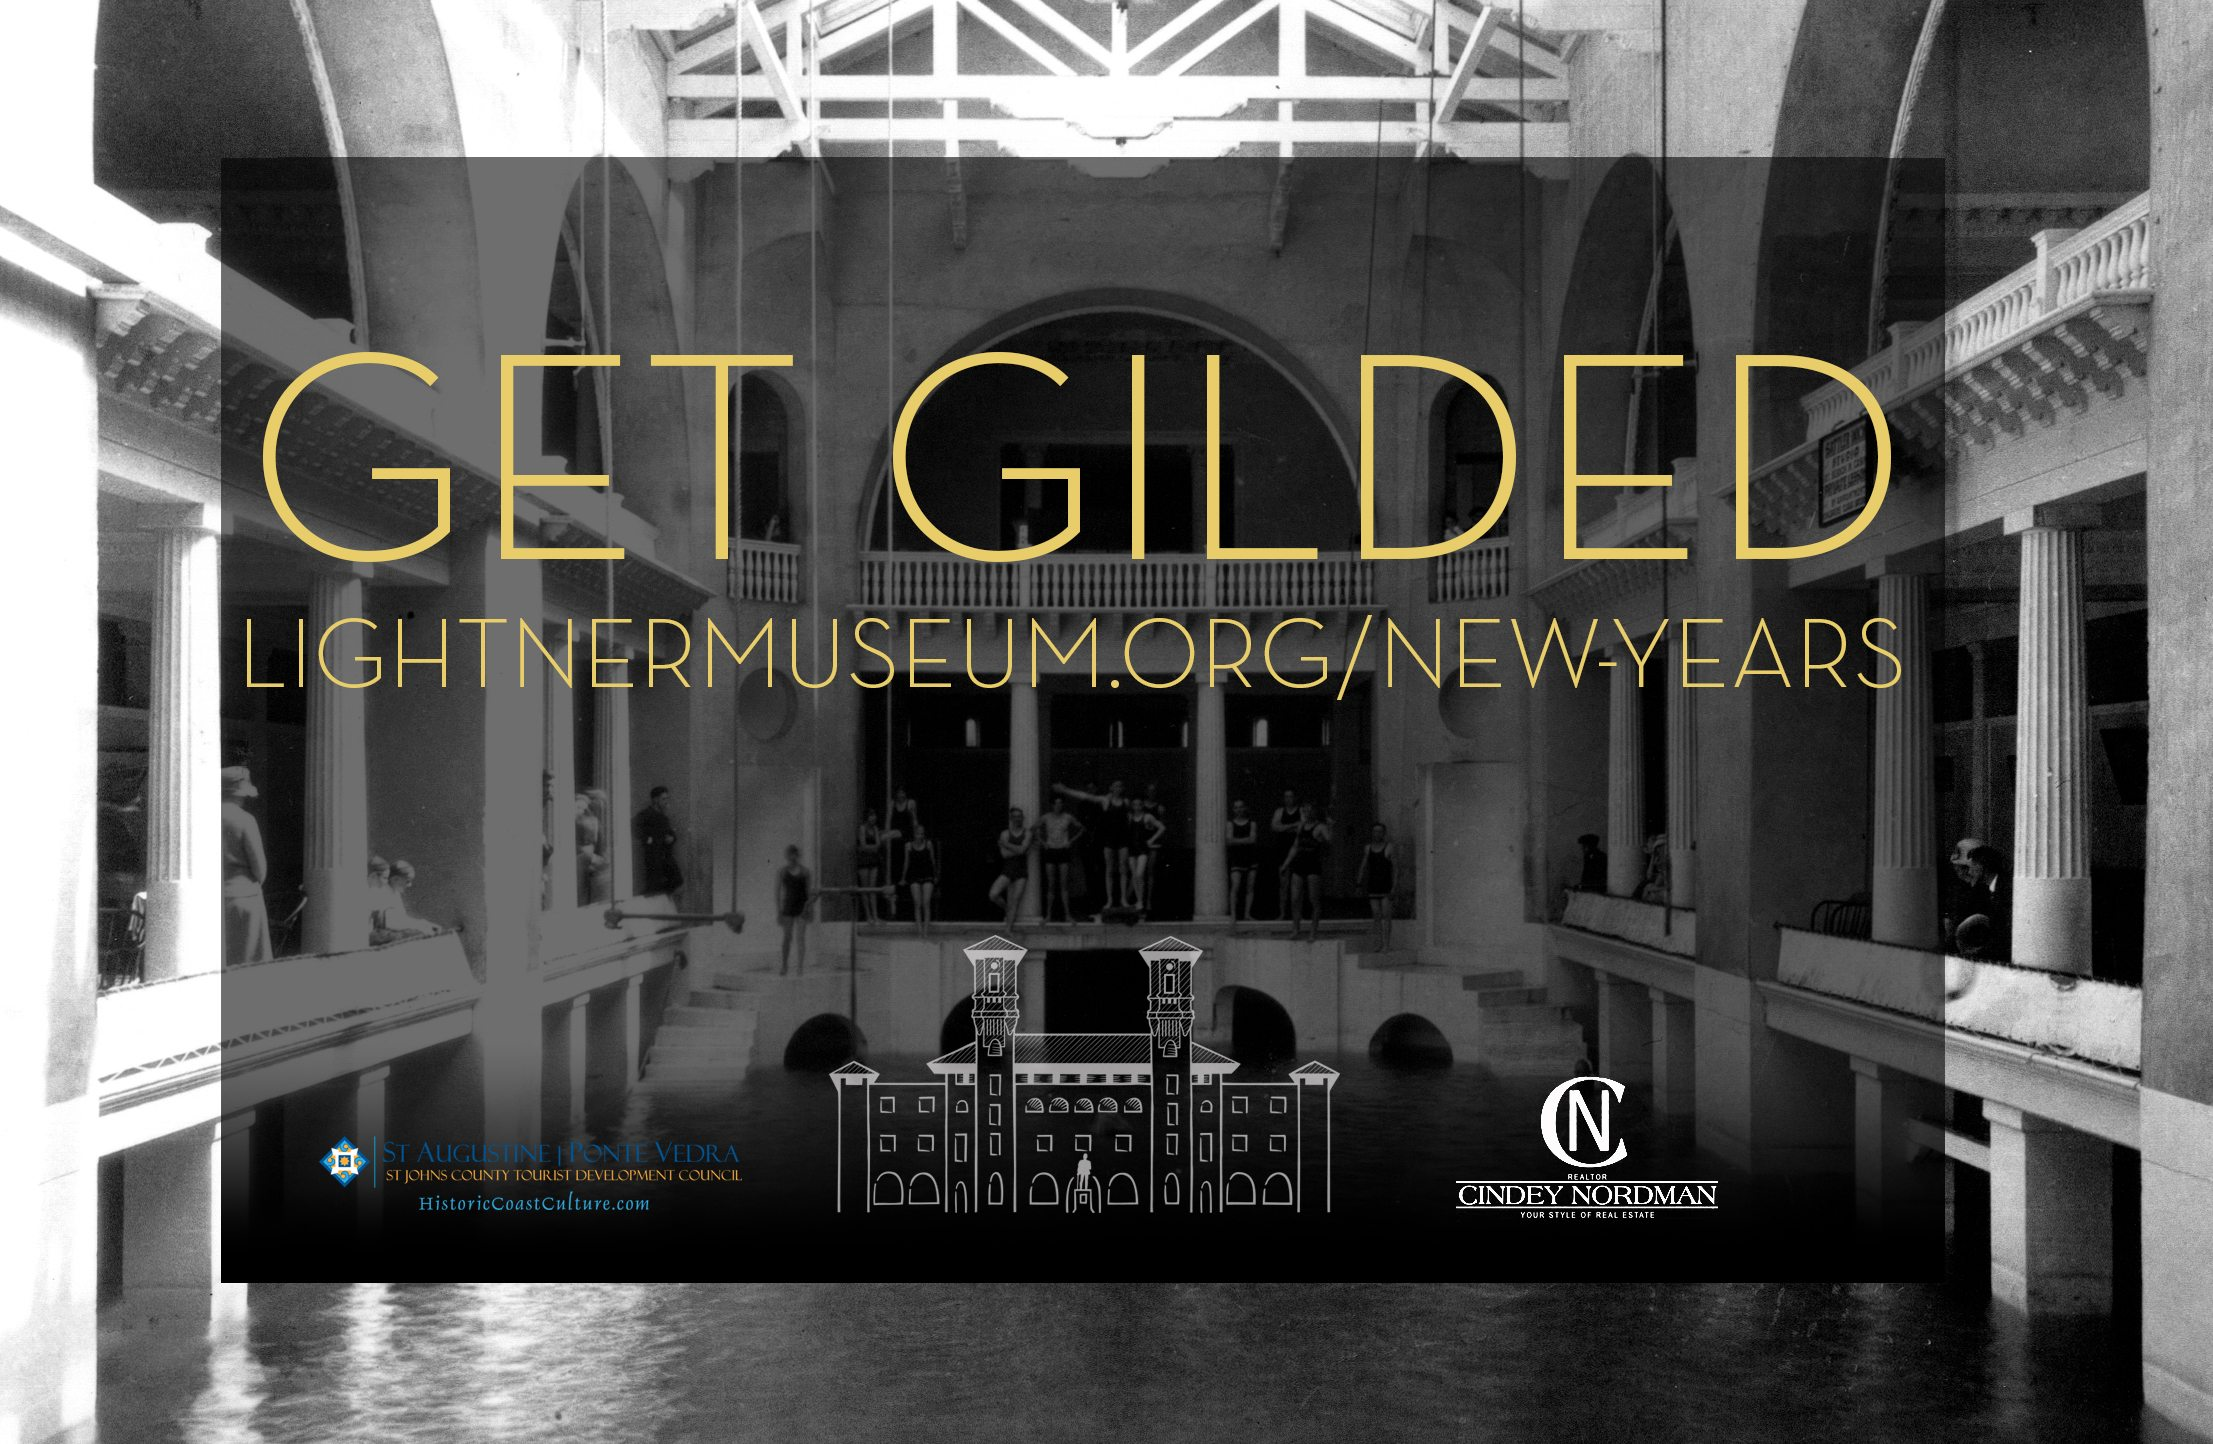 get gilded lightner museum st augustine new years party logo